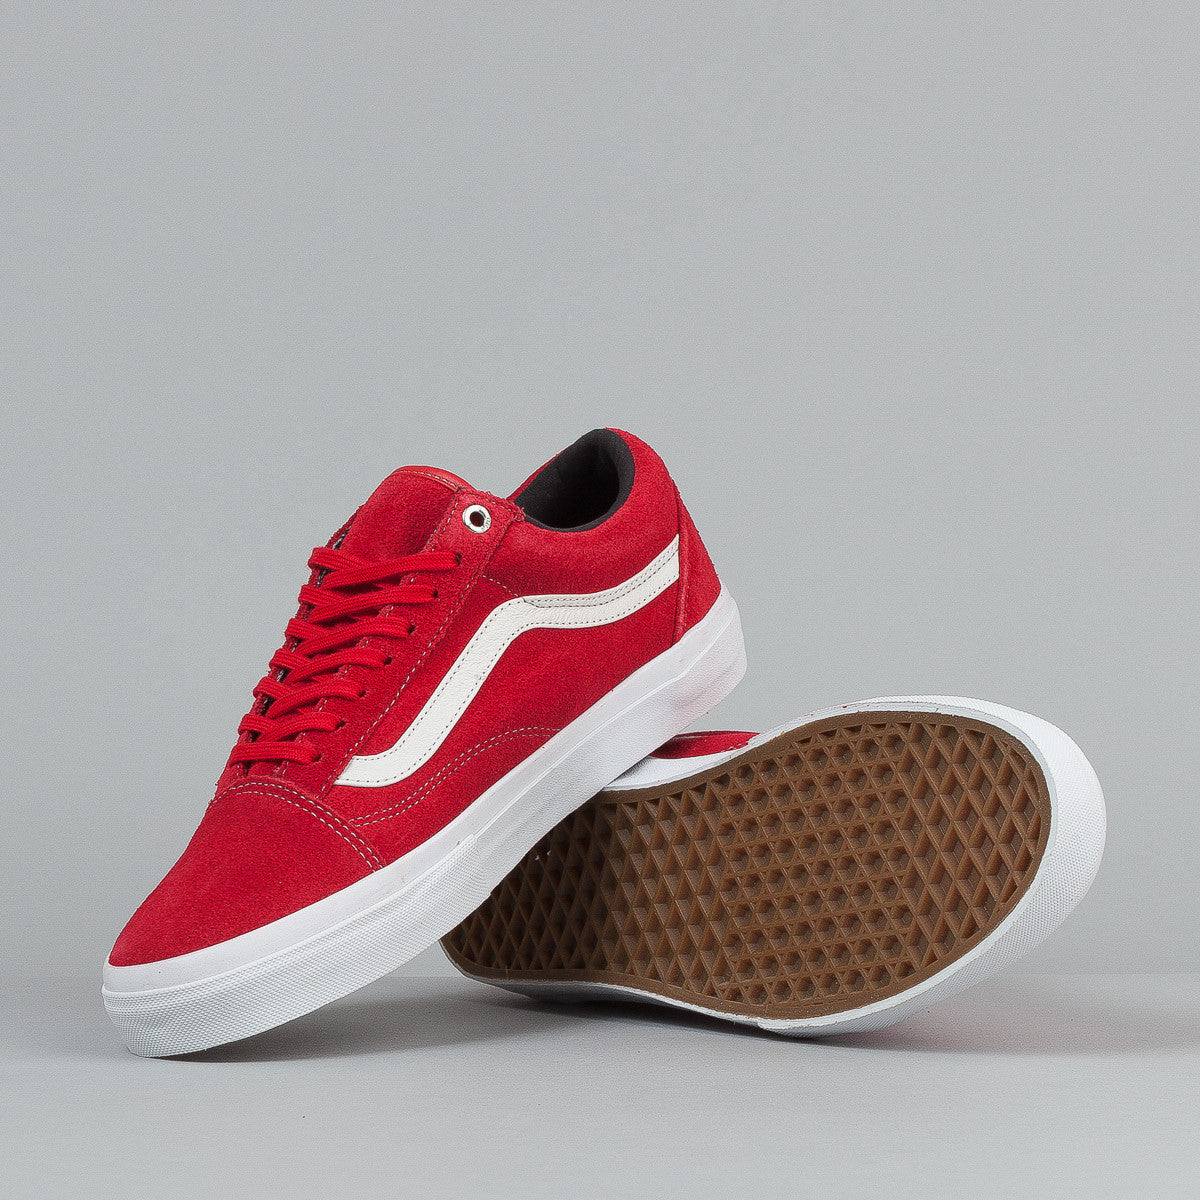 Vans Syndicate Old Skool Pro 'S' Shoes - Red / White